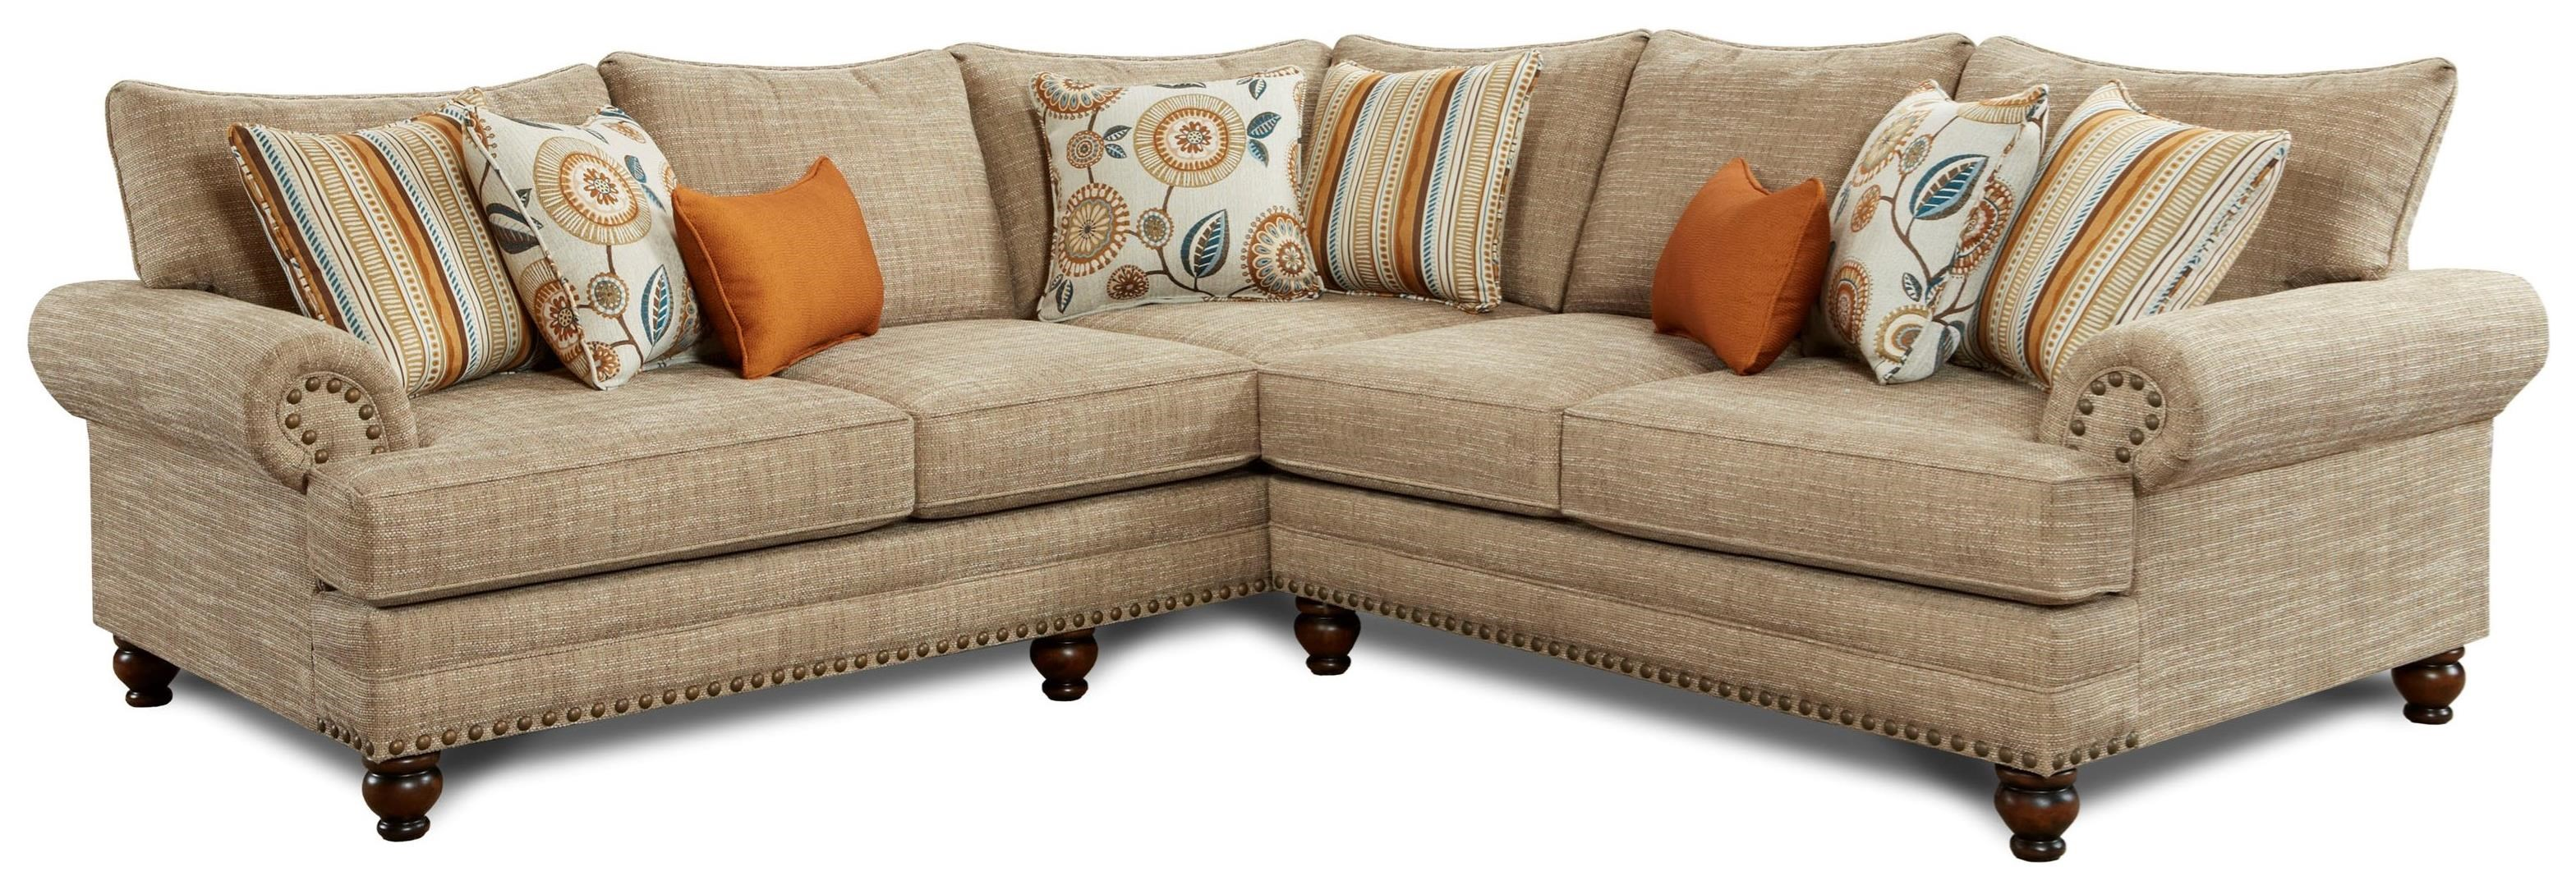 oatmeal sofa set what to do with old cover fiera ashley furniture home thesofa